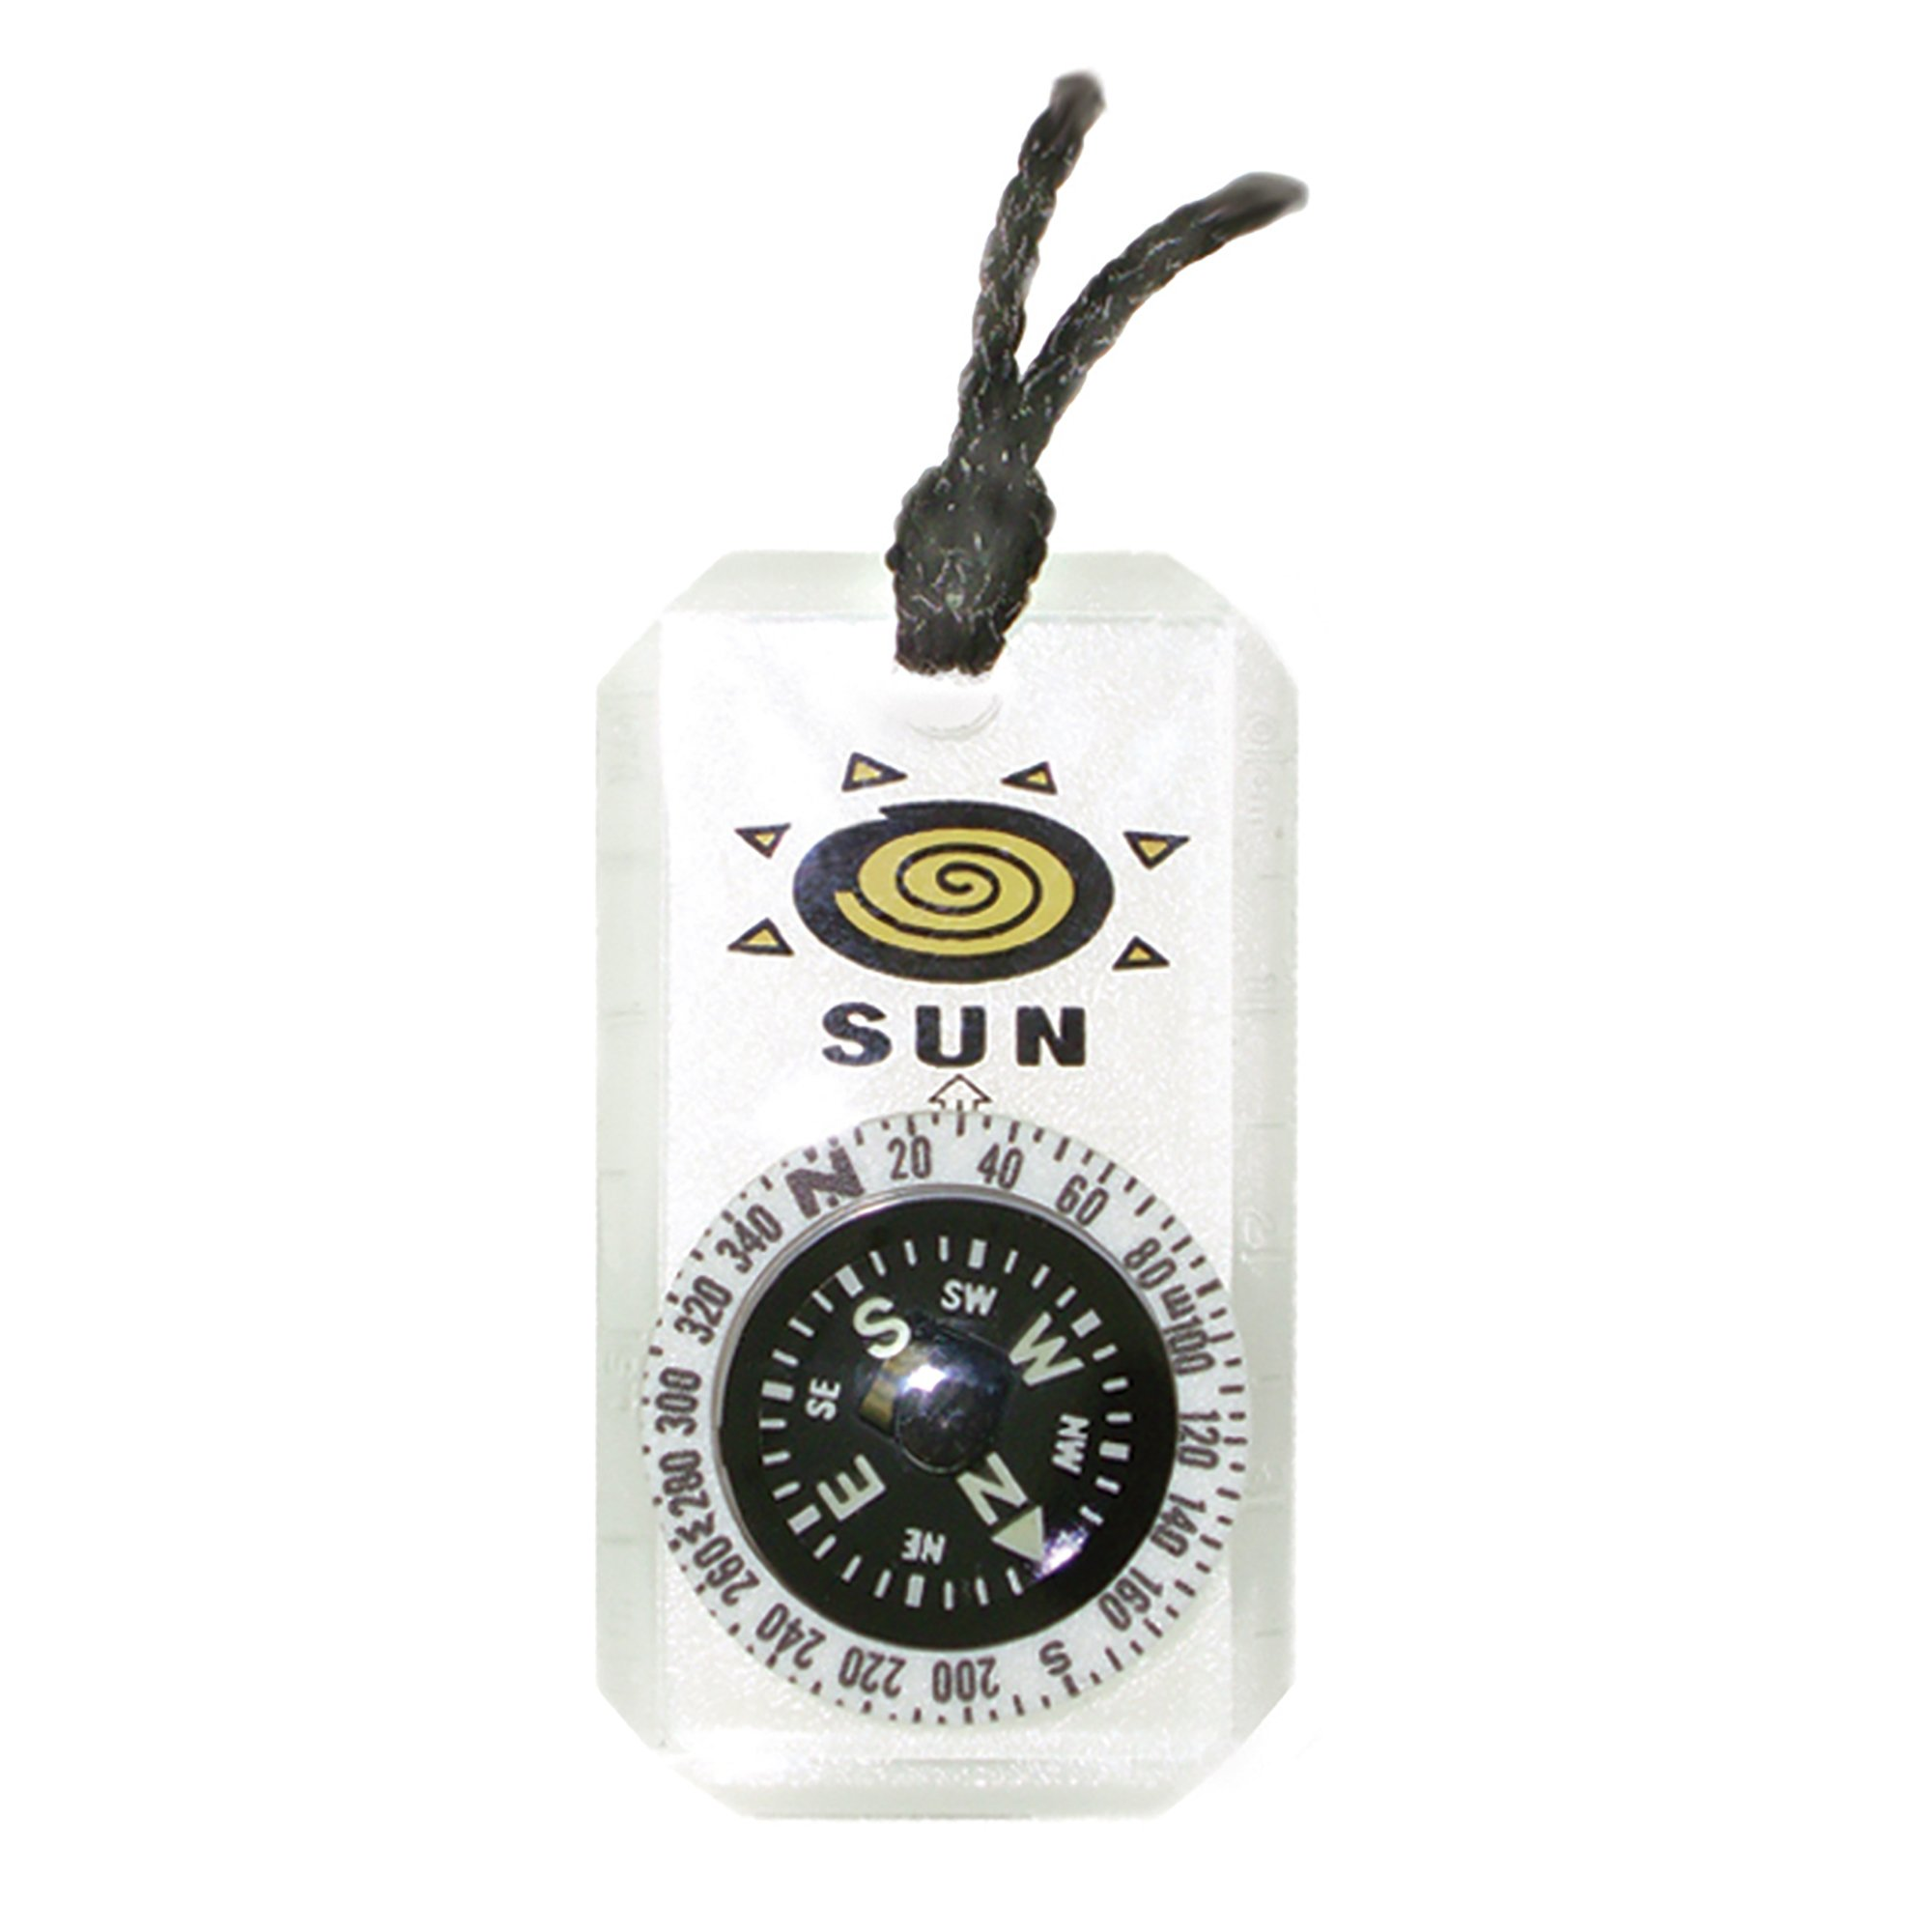 MiniComp II - Mini Orienteering Compass with Rotating Bezel  Easy-to-Read Zipperpull Compass for Jacket, Parka, or Pack